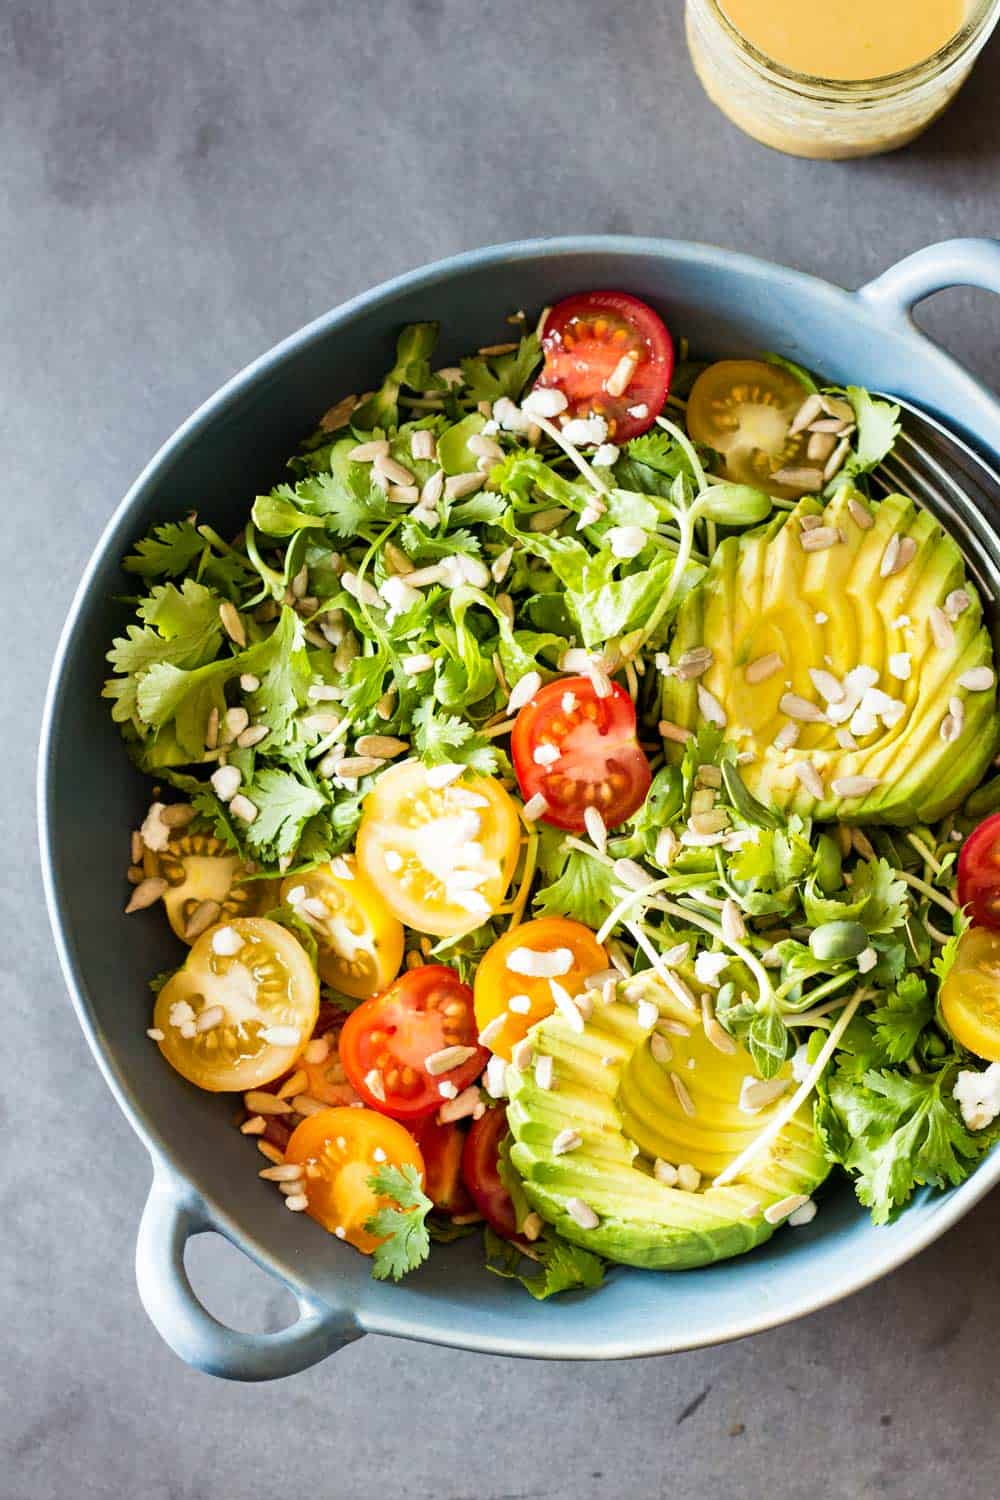 Top view of Mexican-Style Side Salad in a blue ceramic bowl, and a jar of honey lime dressing.